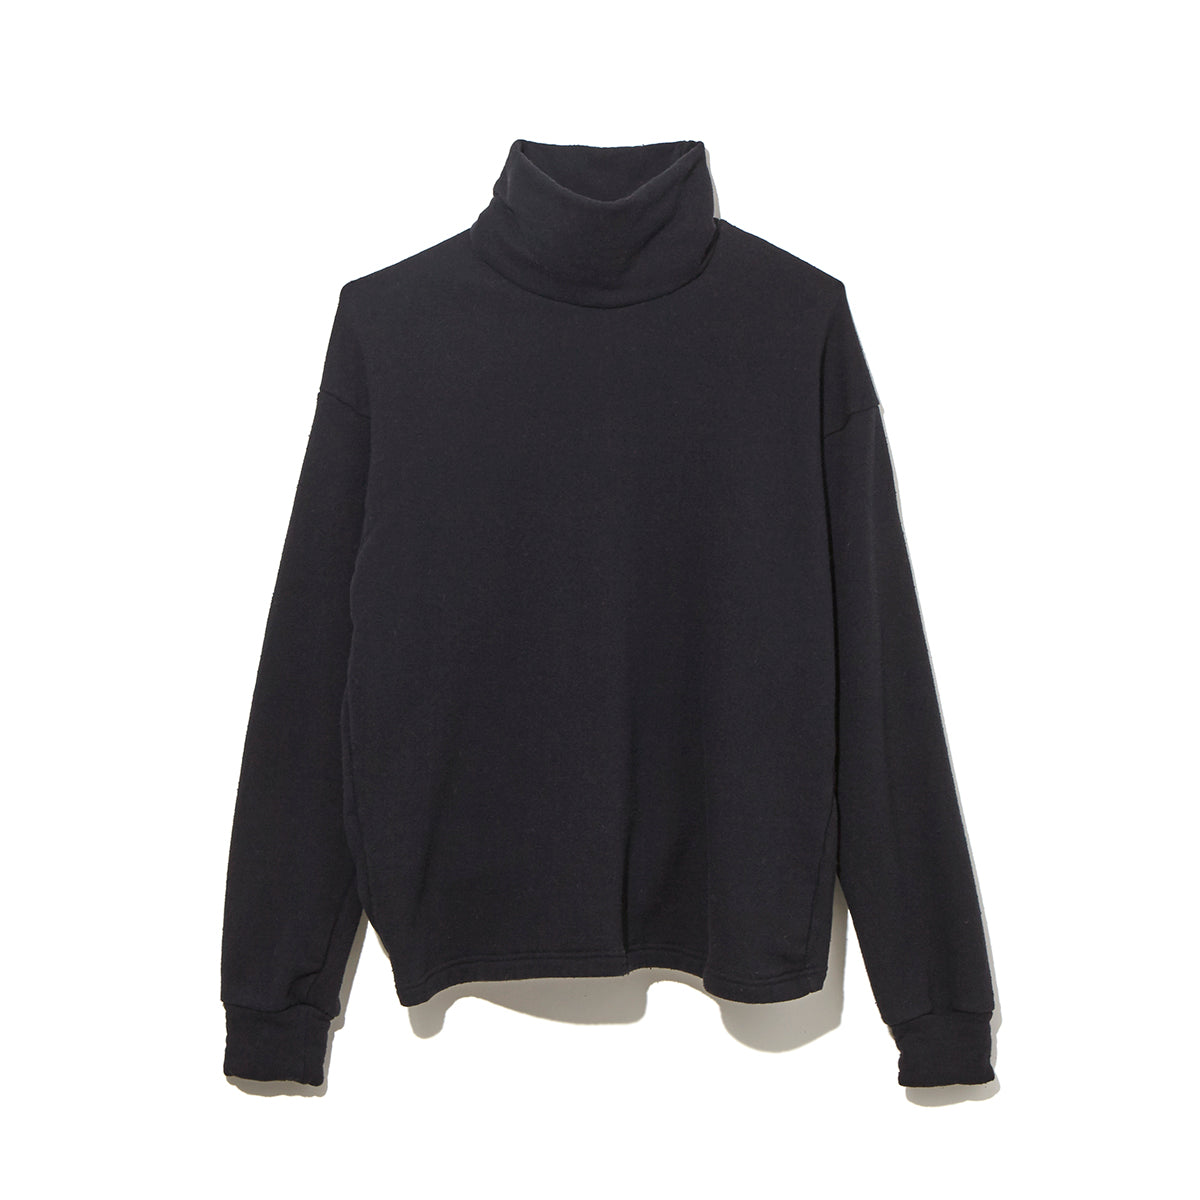 NEP TURTLE NECK / BLACK (21A-NSA-CS-04)